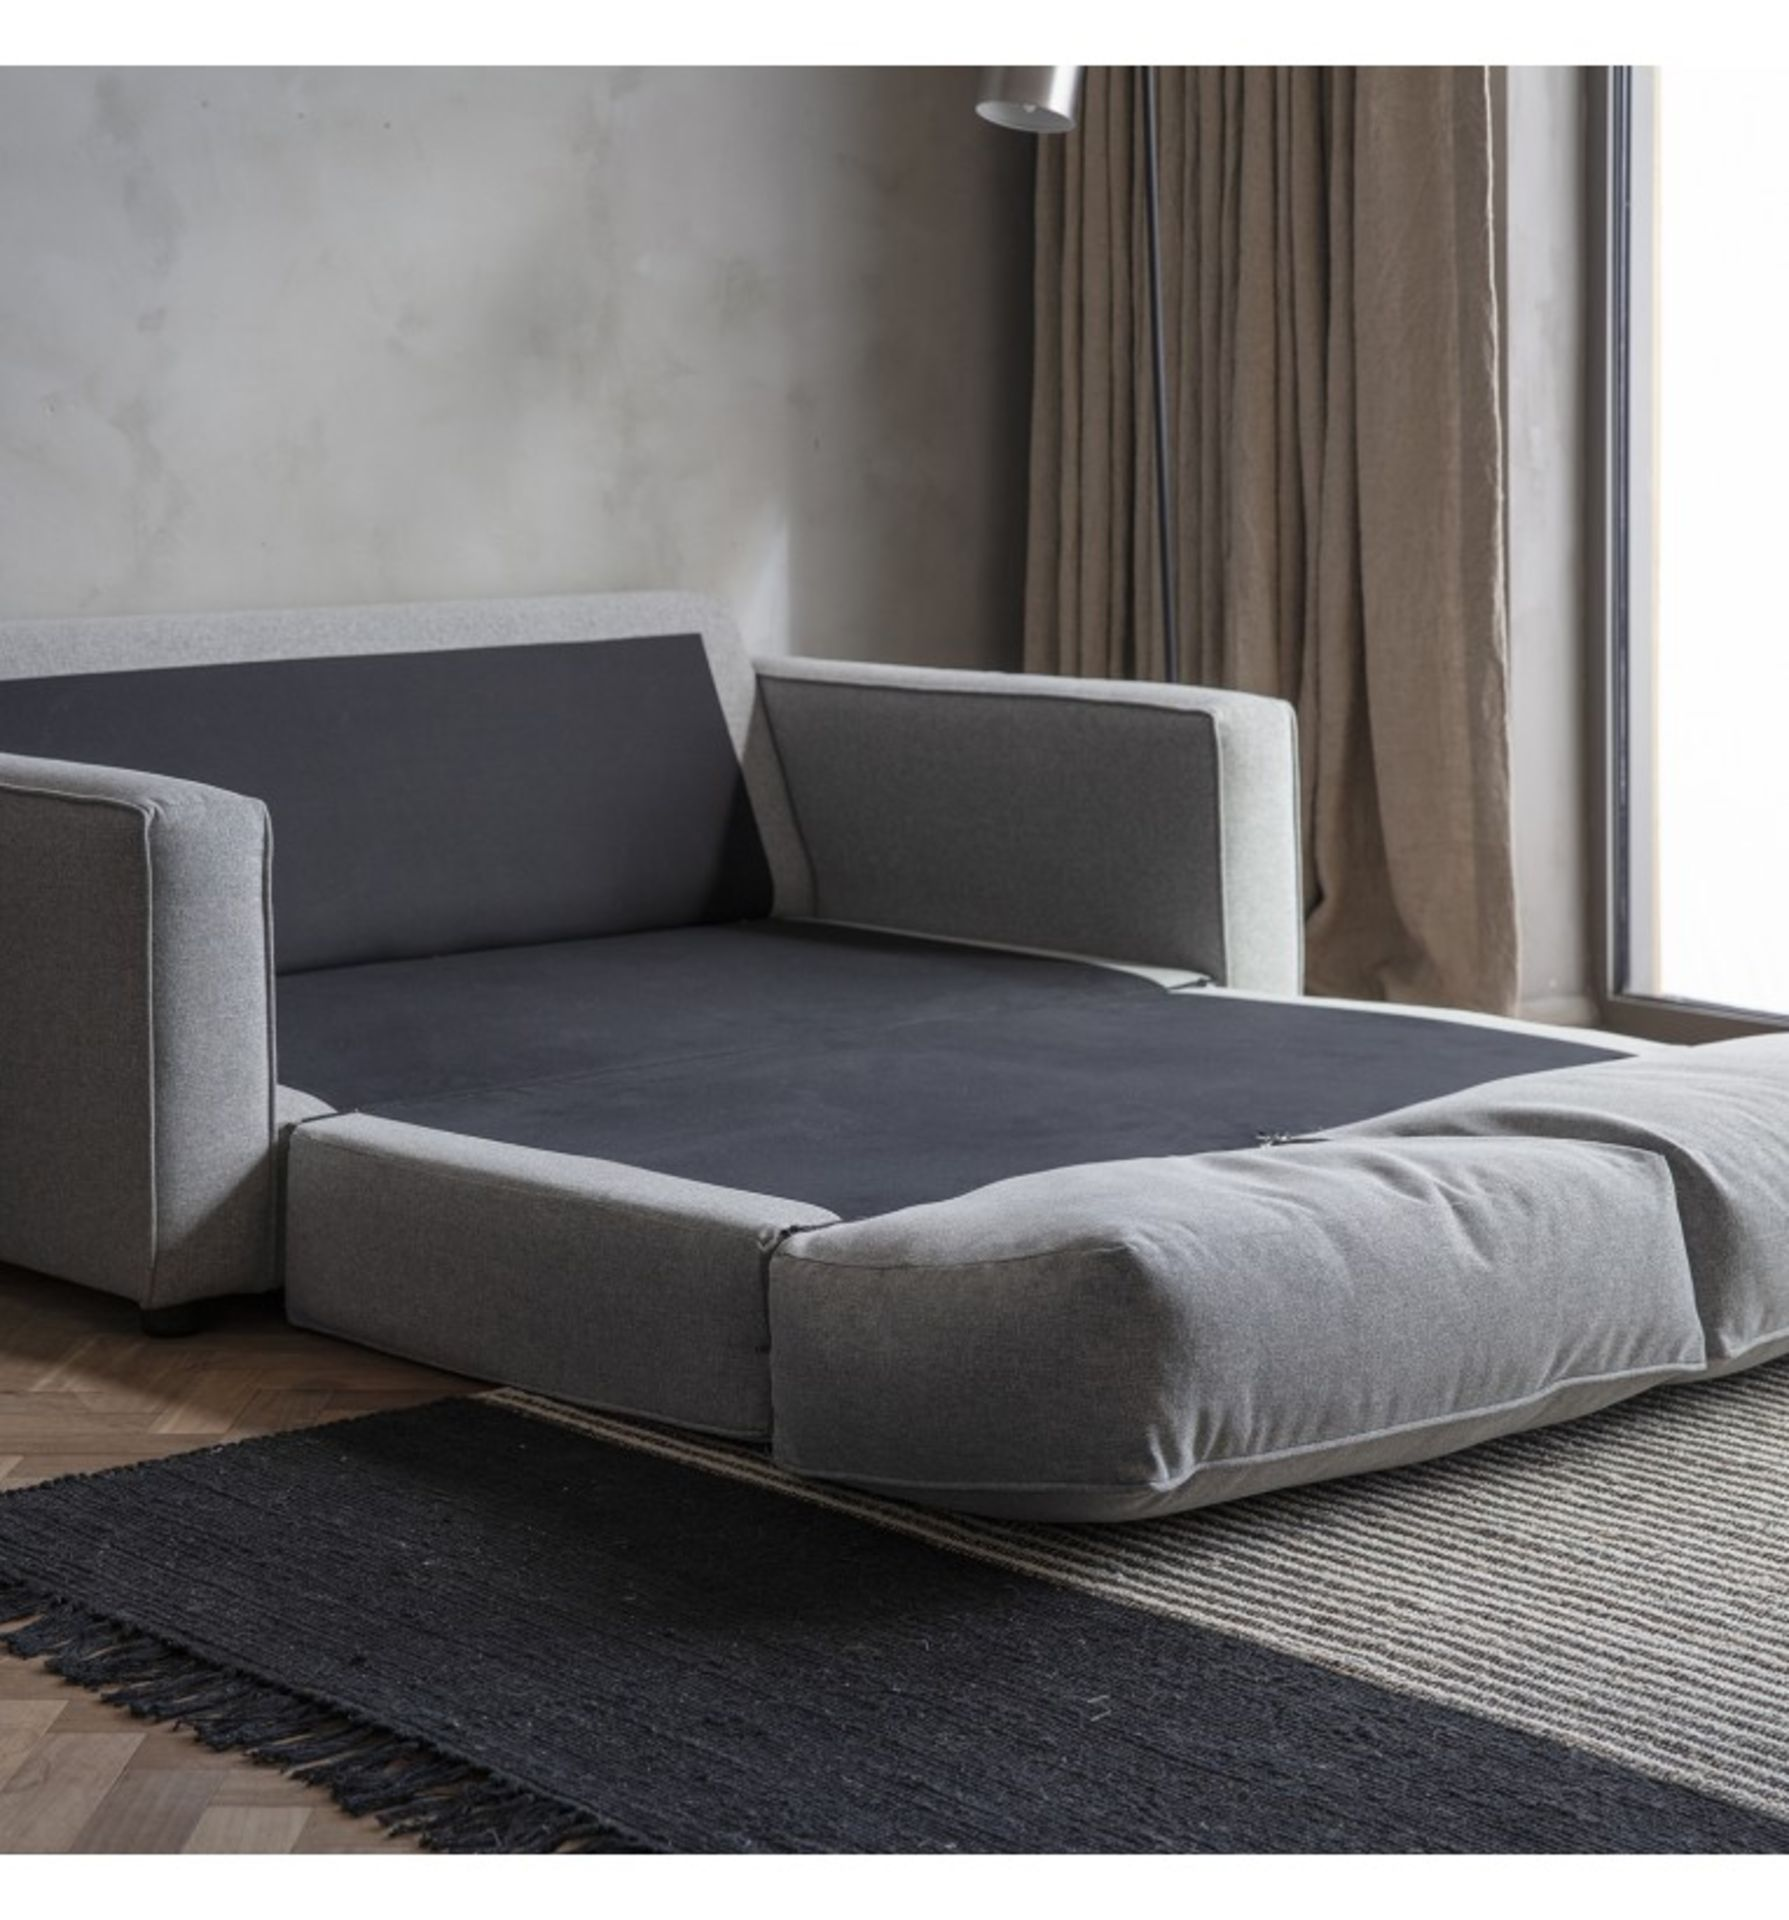 Eastwood Sofa Bed Pocket Sprung King Mattress Unique In Design Our Eastwood Sofa Bed Is Fully Pocket - Image 2 of 2